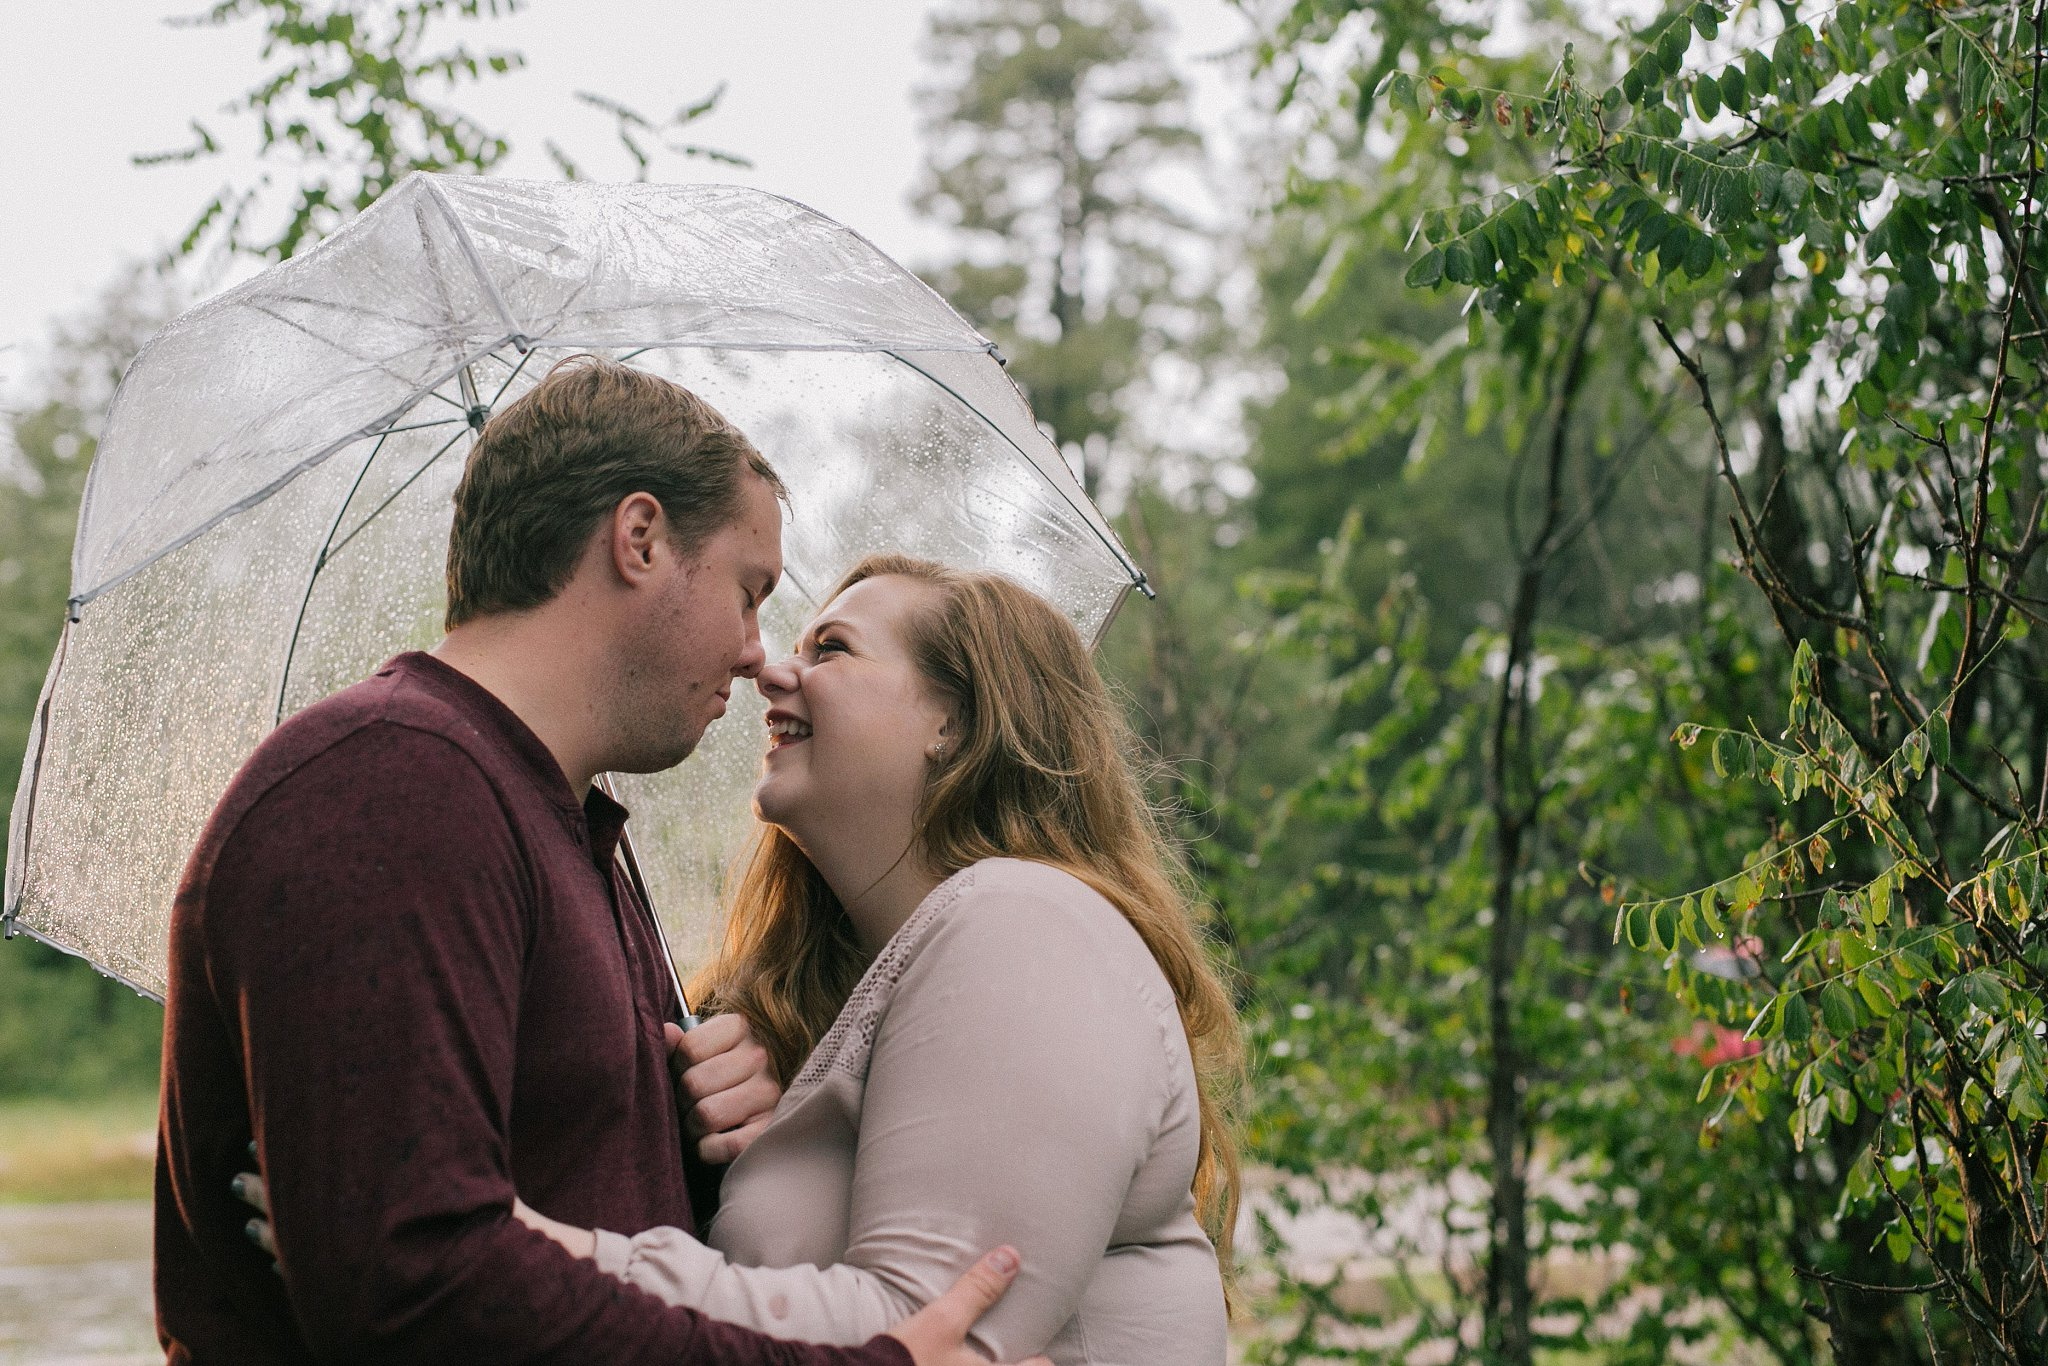 northern arizona engagement session in the rain